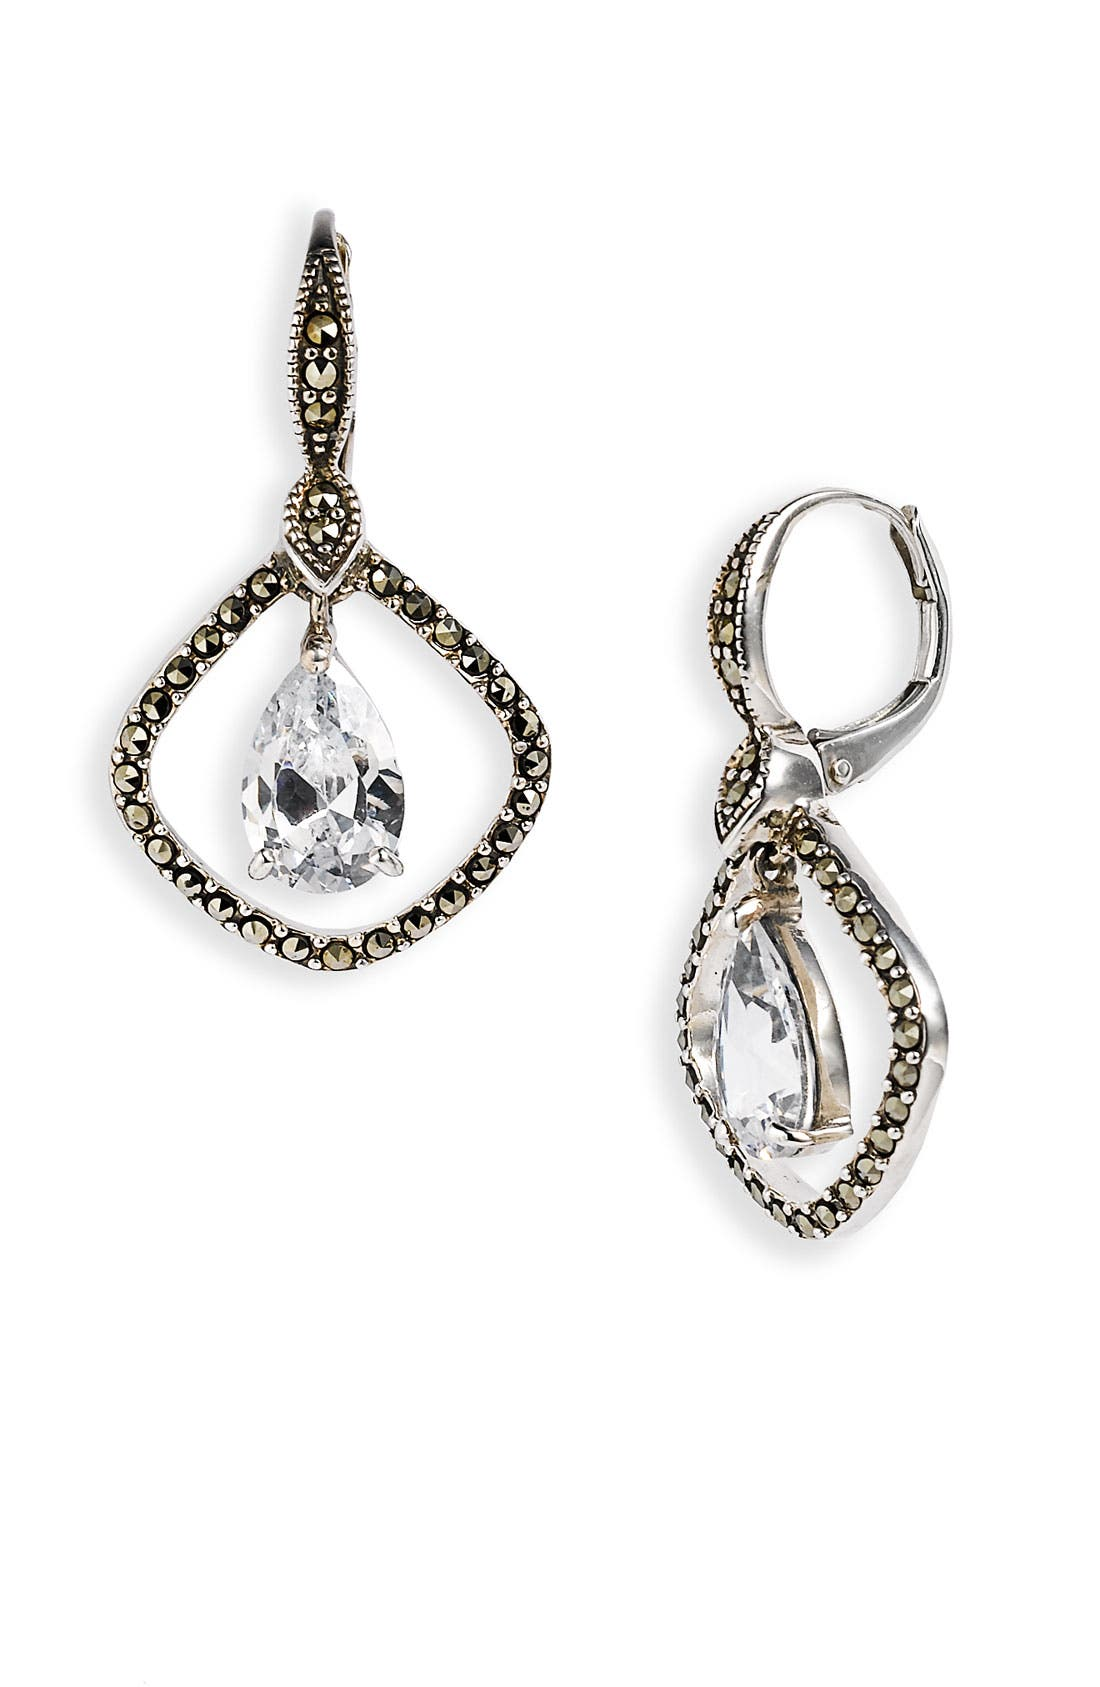 Main Image - Judith Jack 'Winter Ice' Drop Earrings